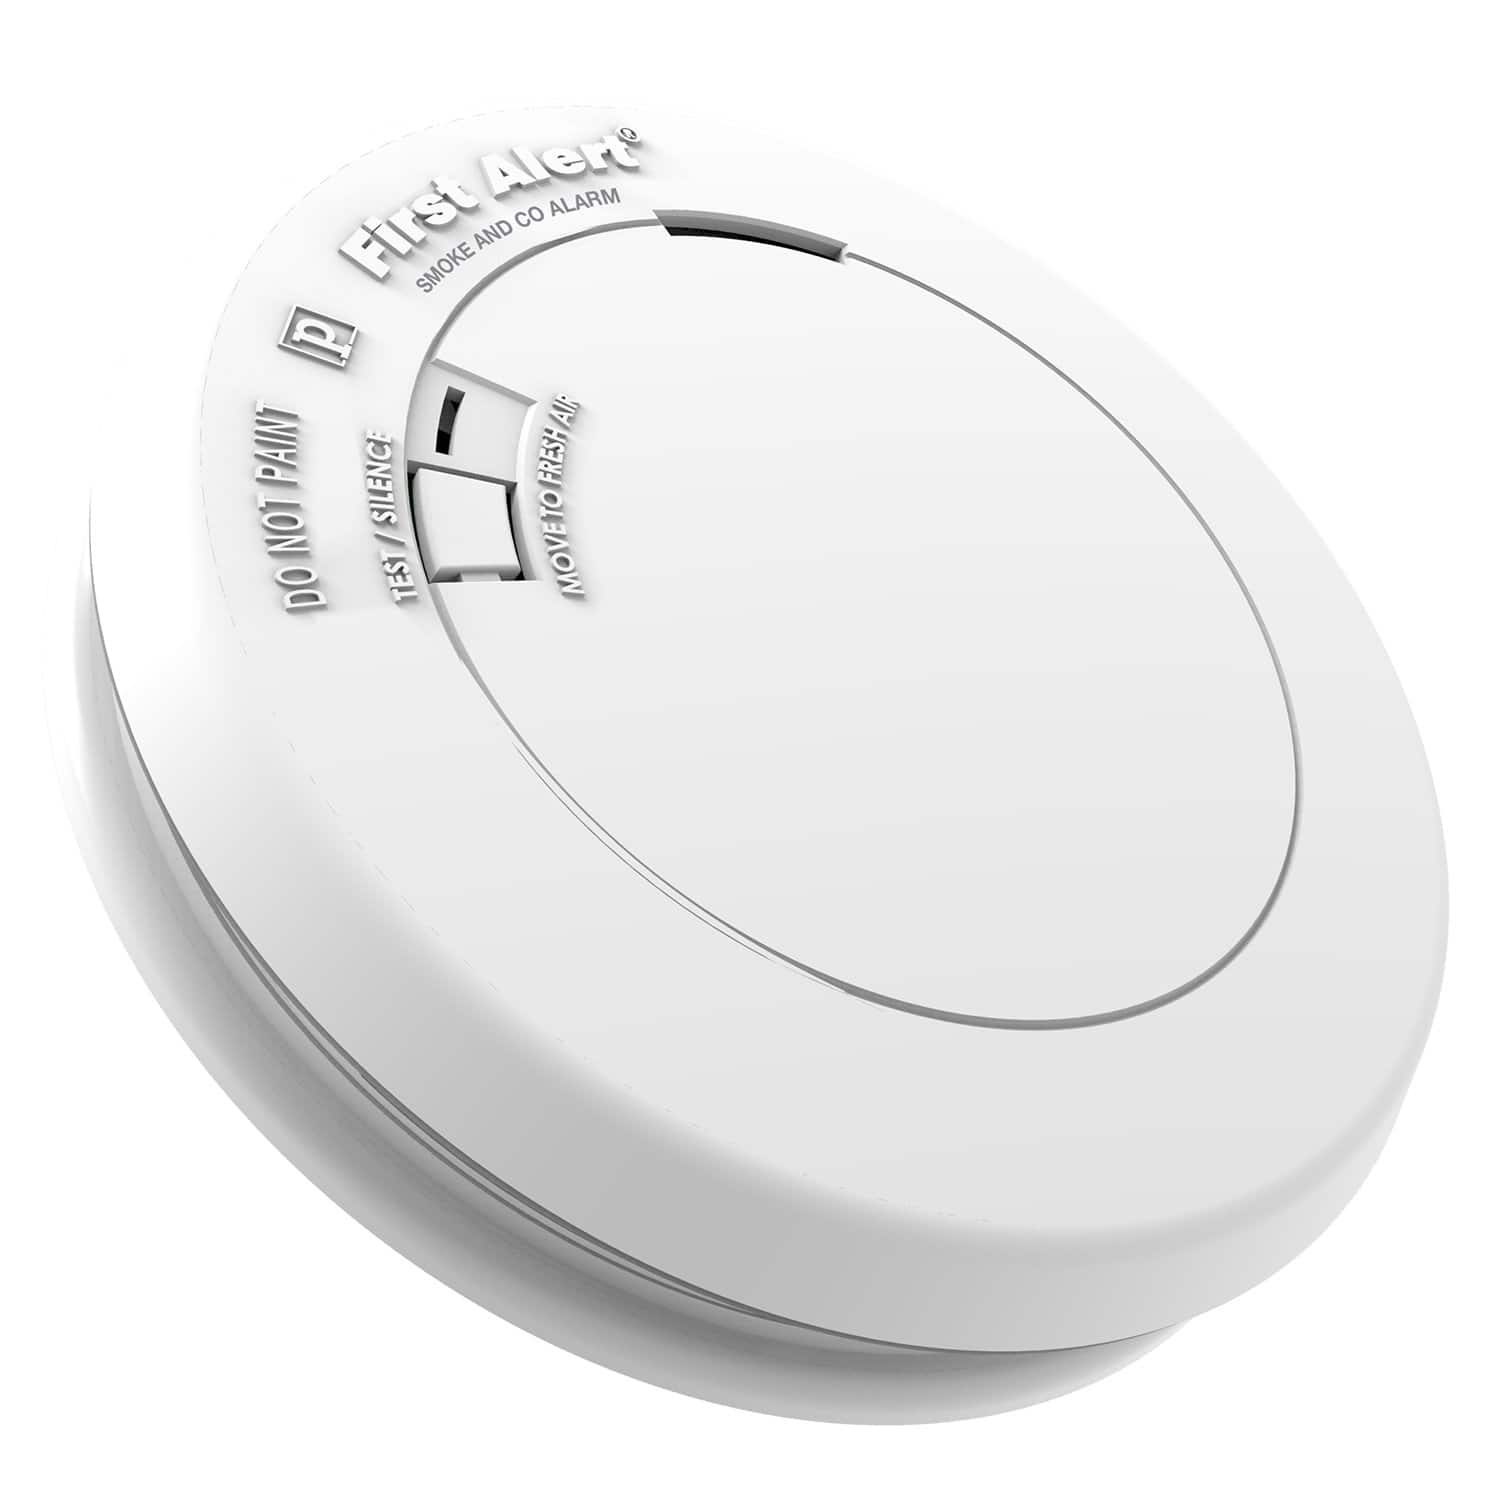 First Alert Smoke Detector and Carbon Monoxide Detector Alarm with Built-In 10-Year Battery $28.57 + Free shipping